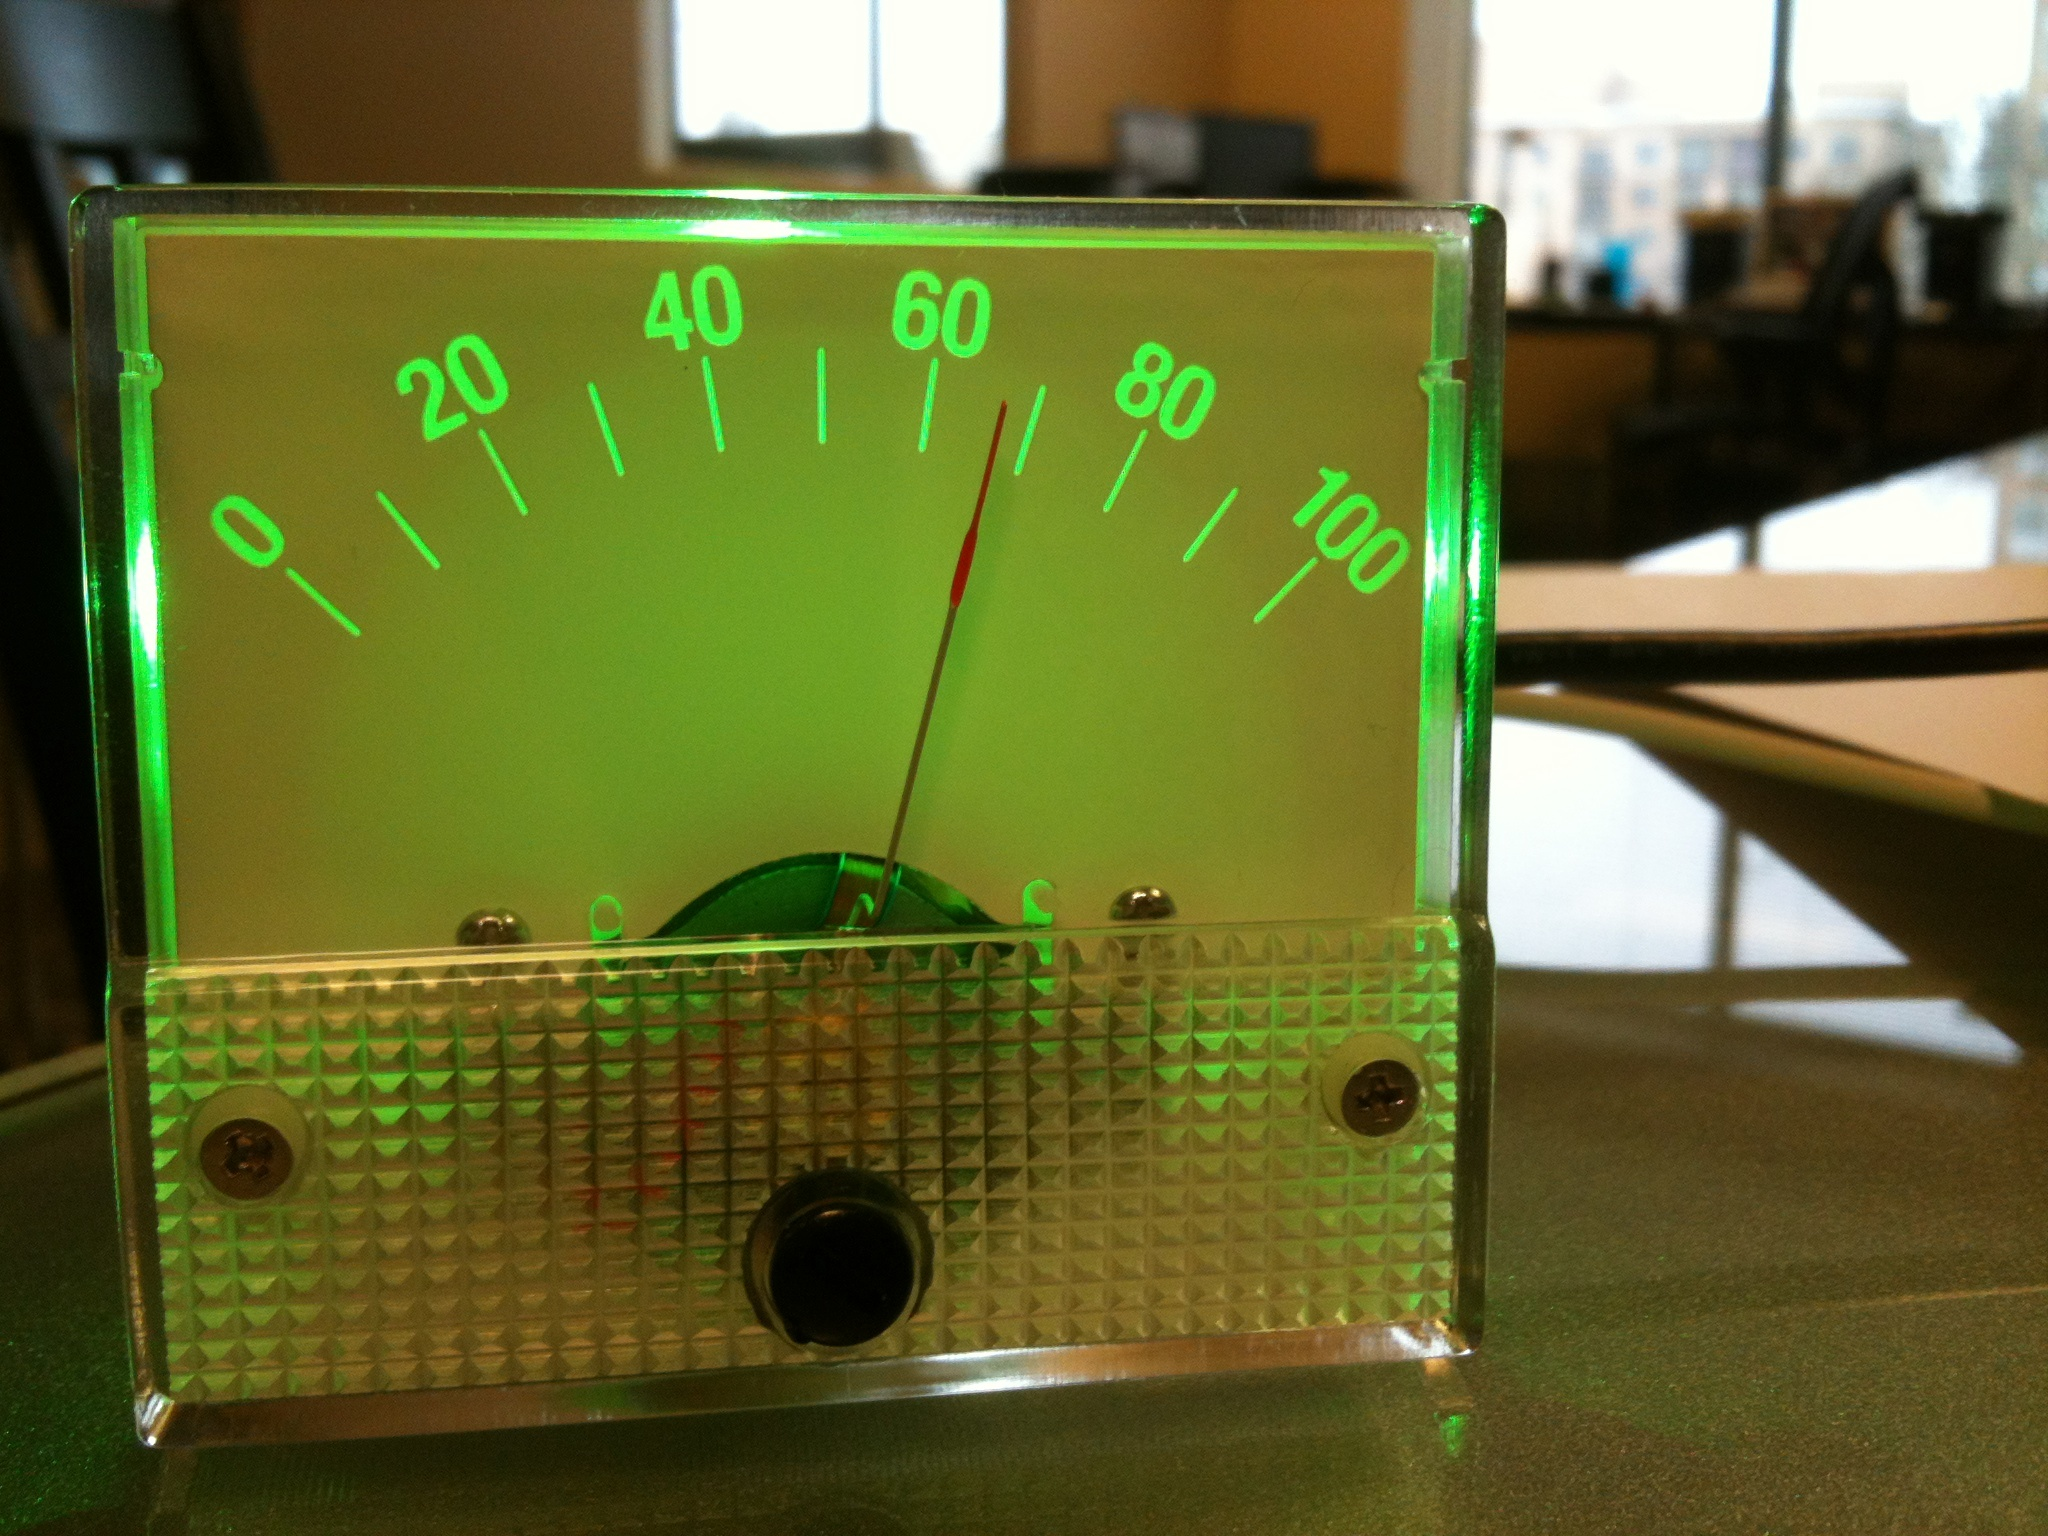 The Monulator: USB-controlled analog panel meter with RGB backlight.